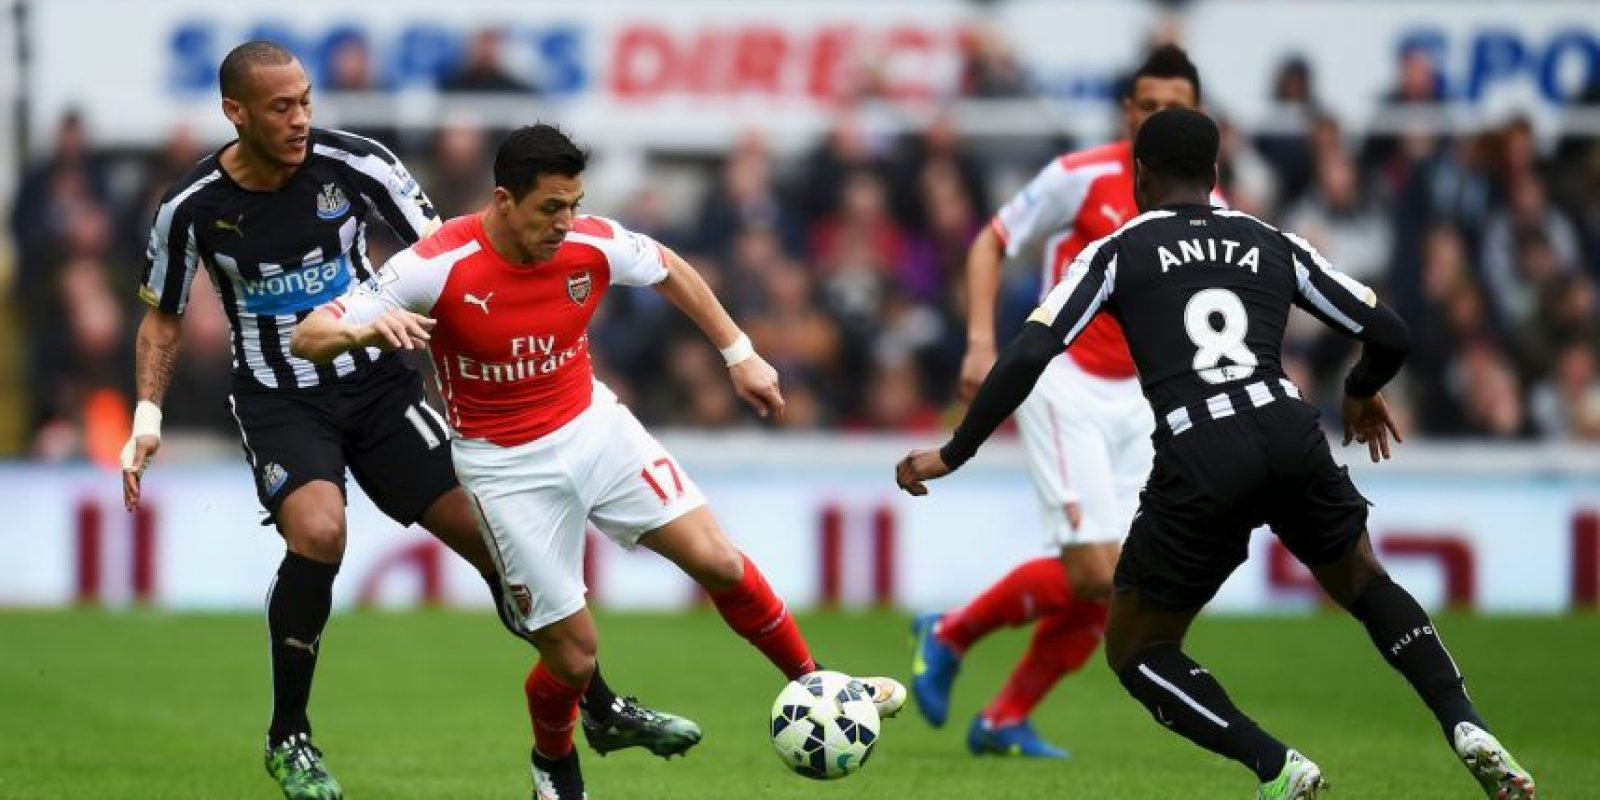 El chileno es figura en el Arsenal Foto: Getty Images